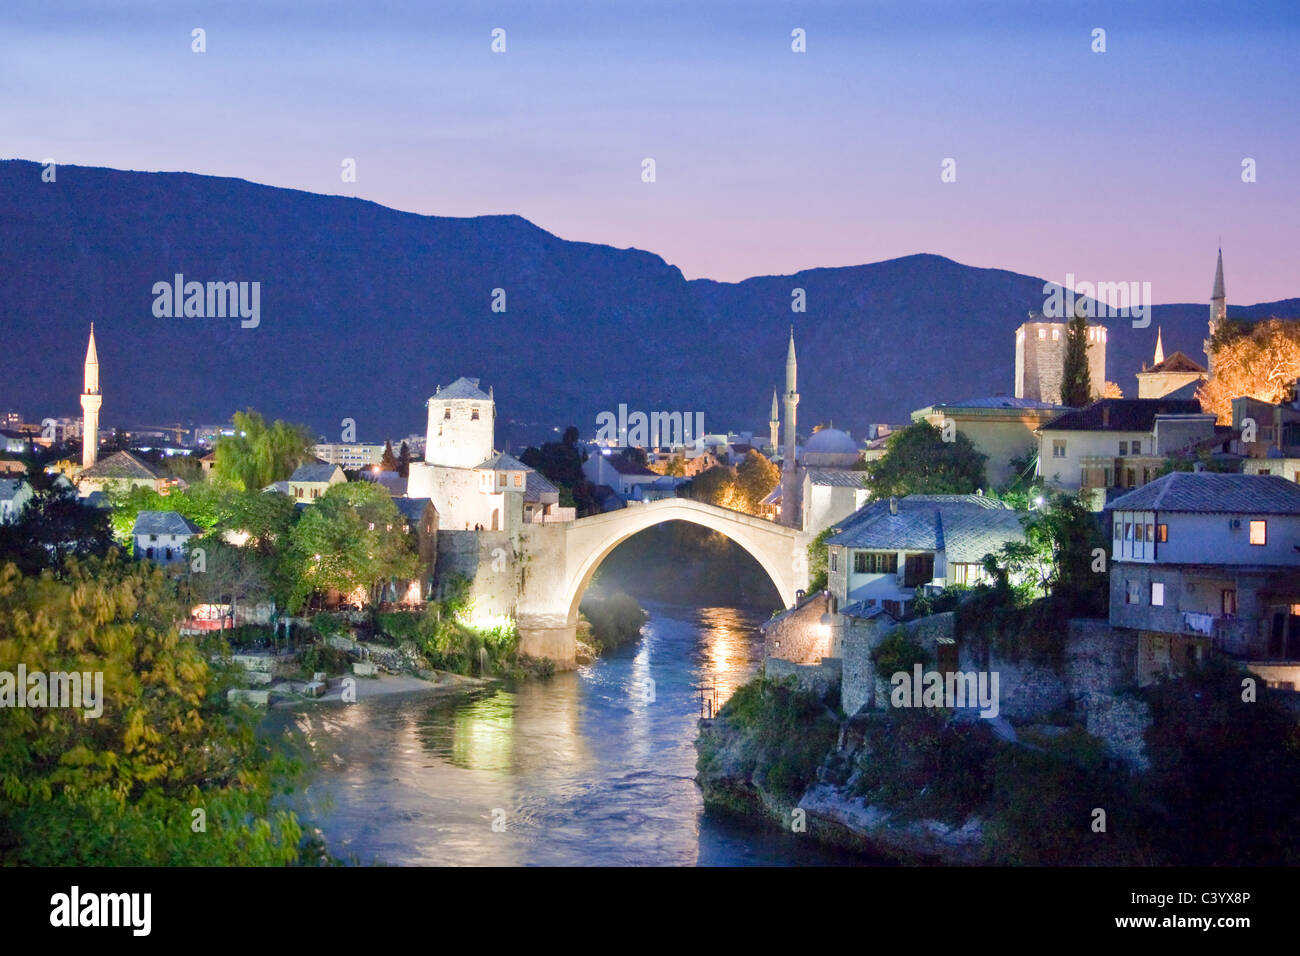 Bosnia Herzegovina, Mostar, Mostar, Old Town, bridge, in, evening - Stock Image